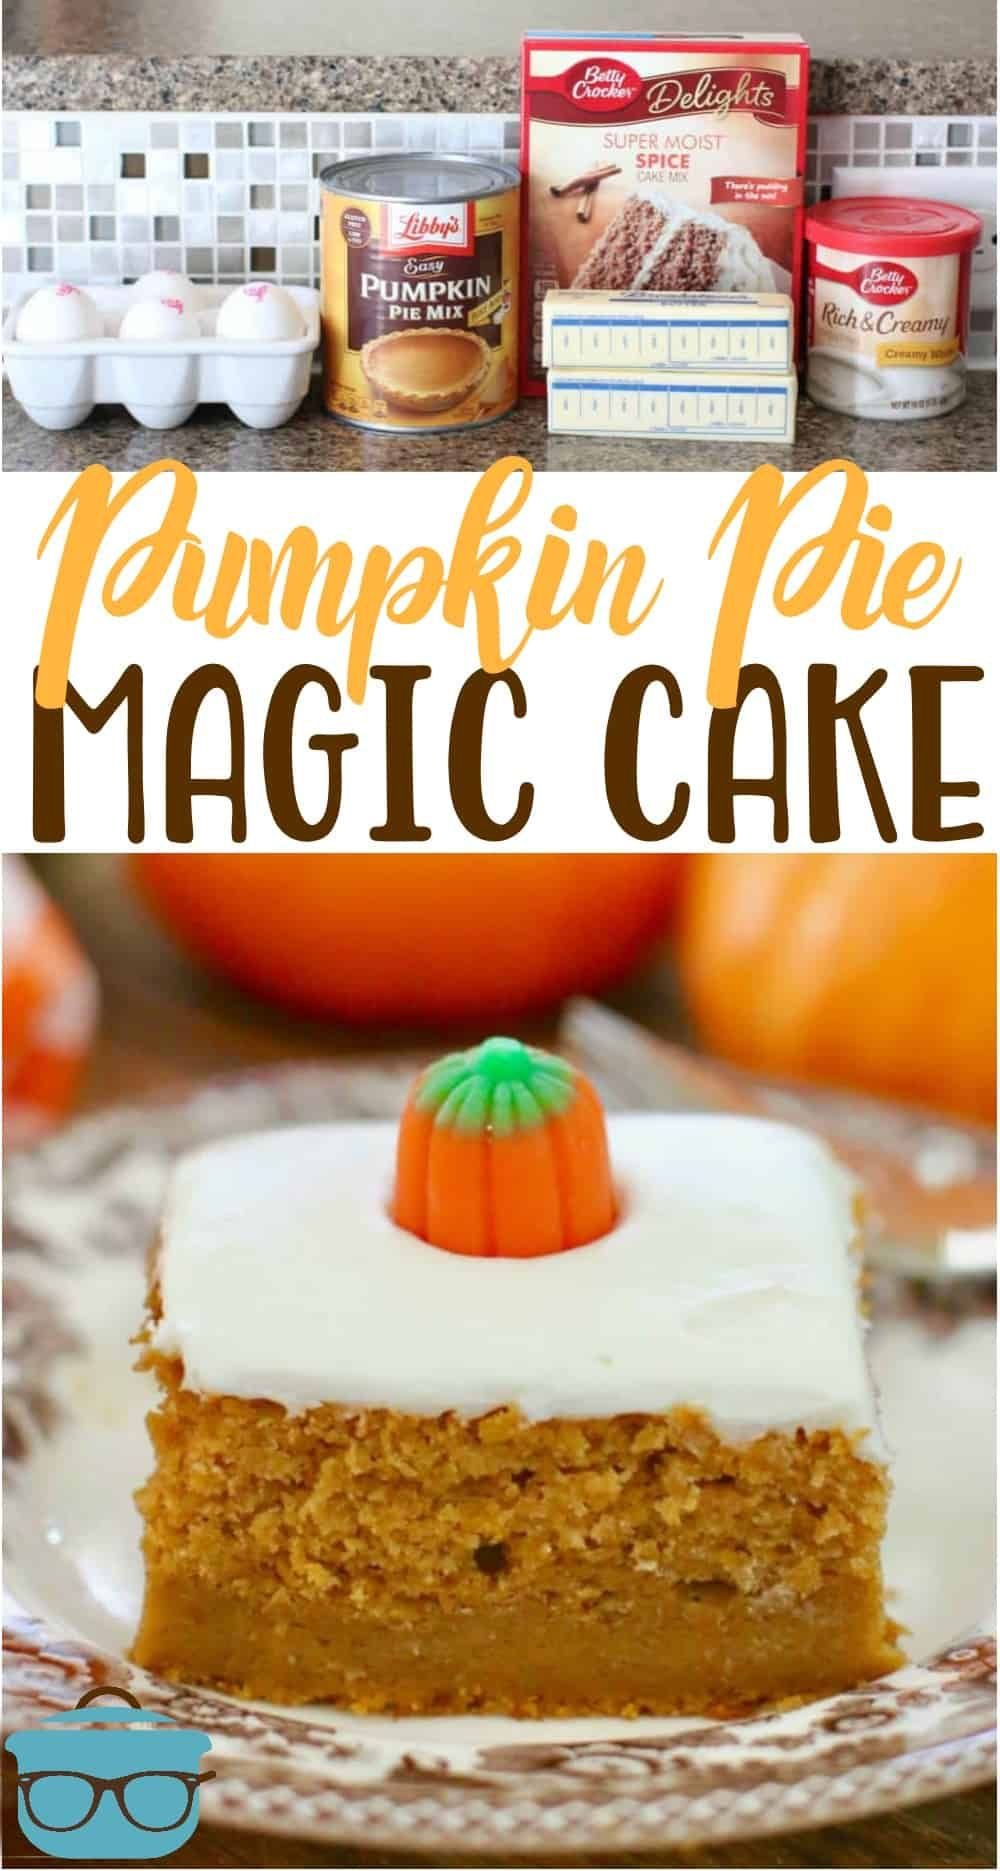 Pumpkin pie magic cake #frostings